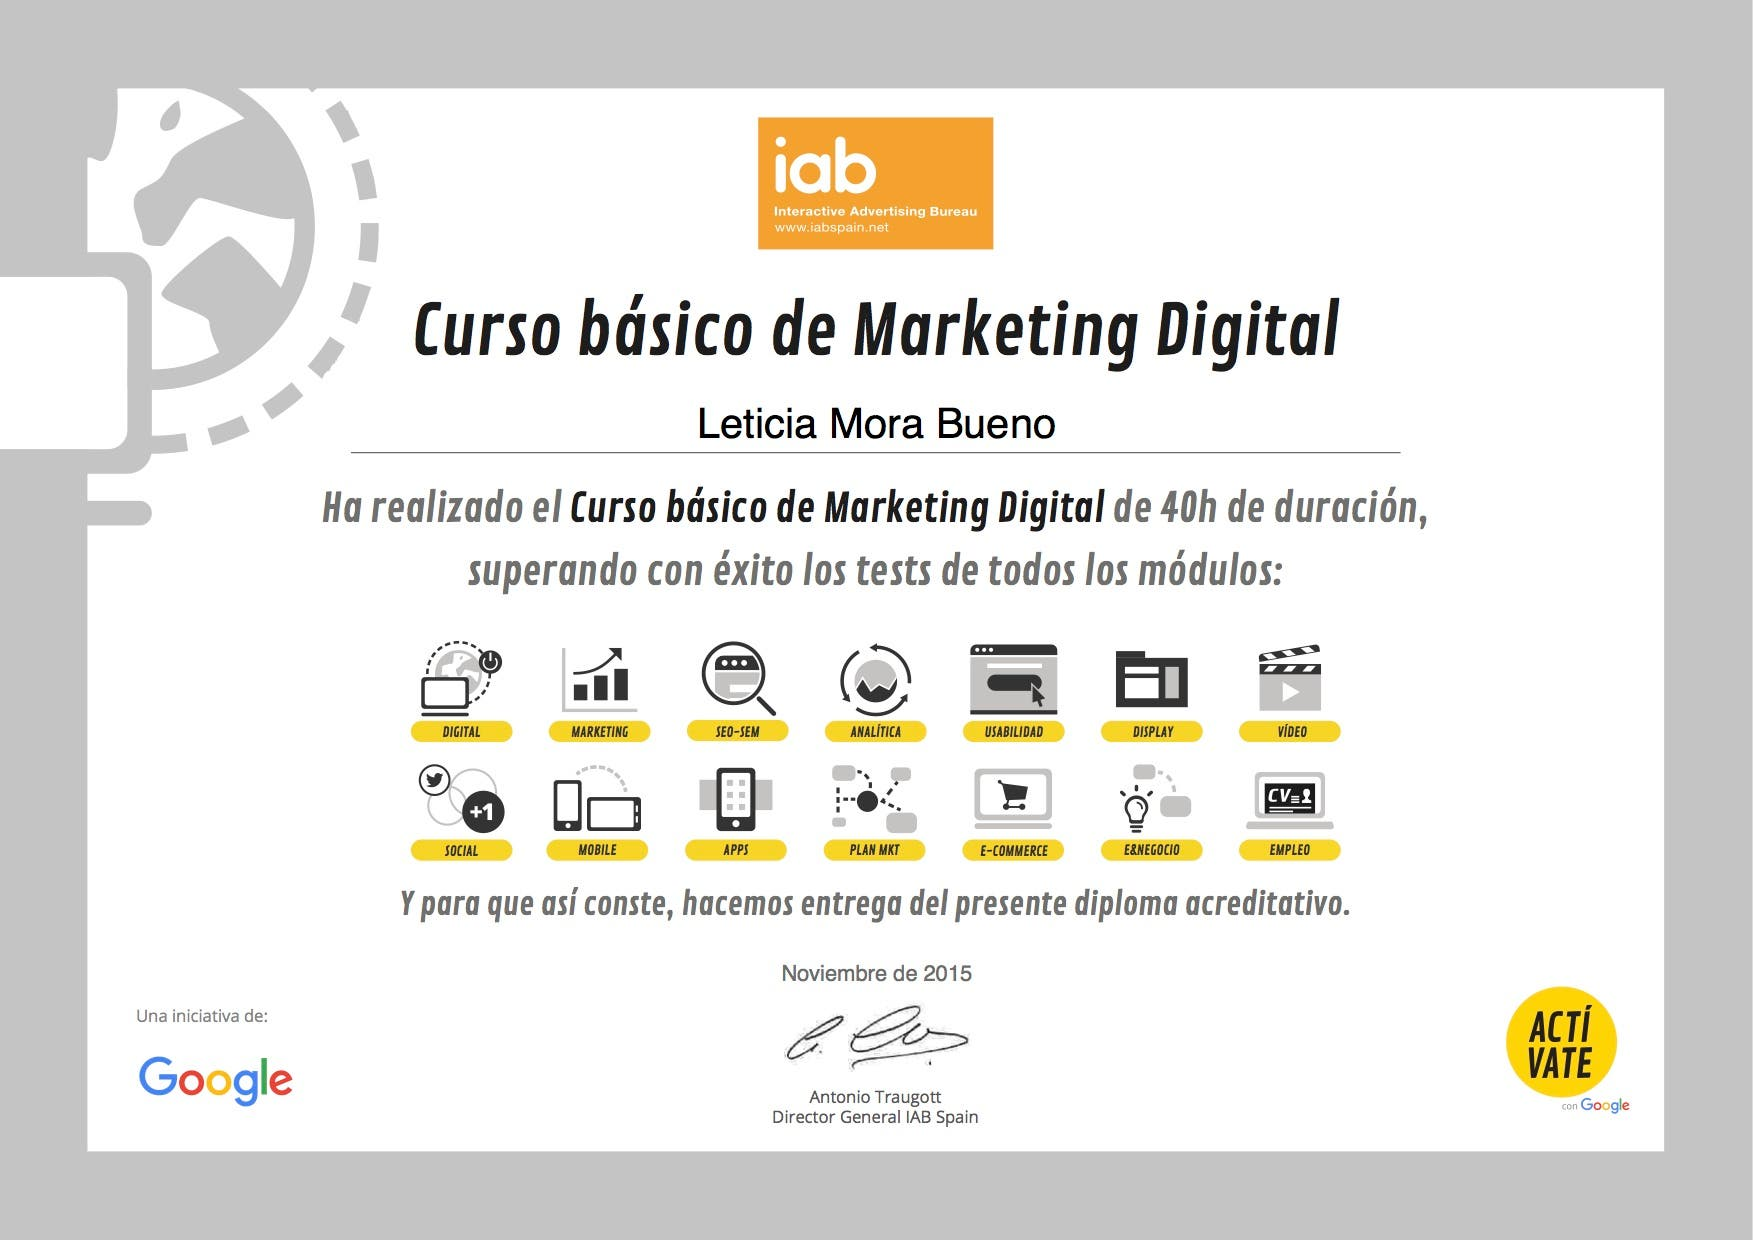 Curso de Marketing digital impartido por la IAB España